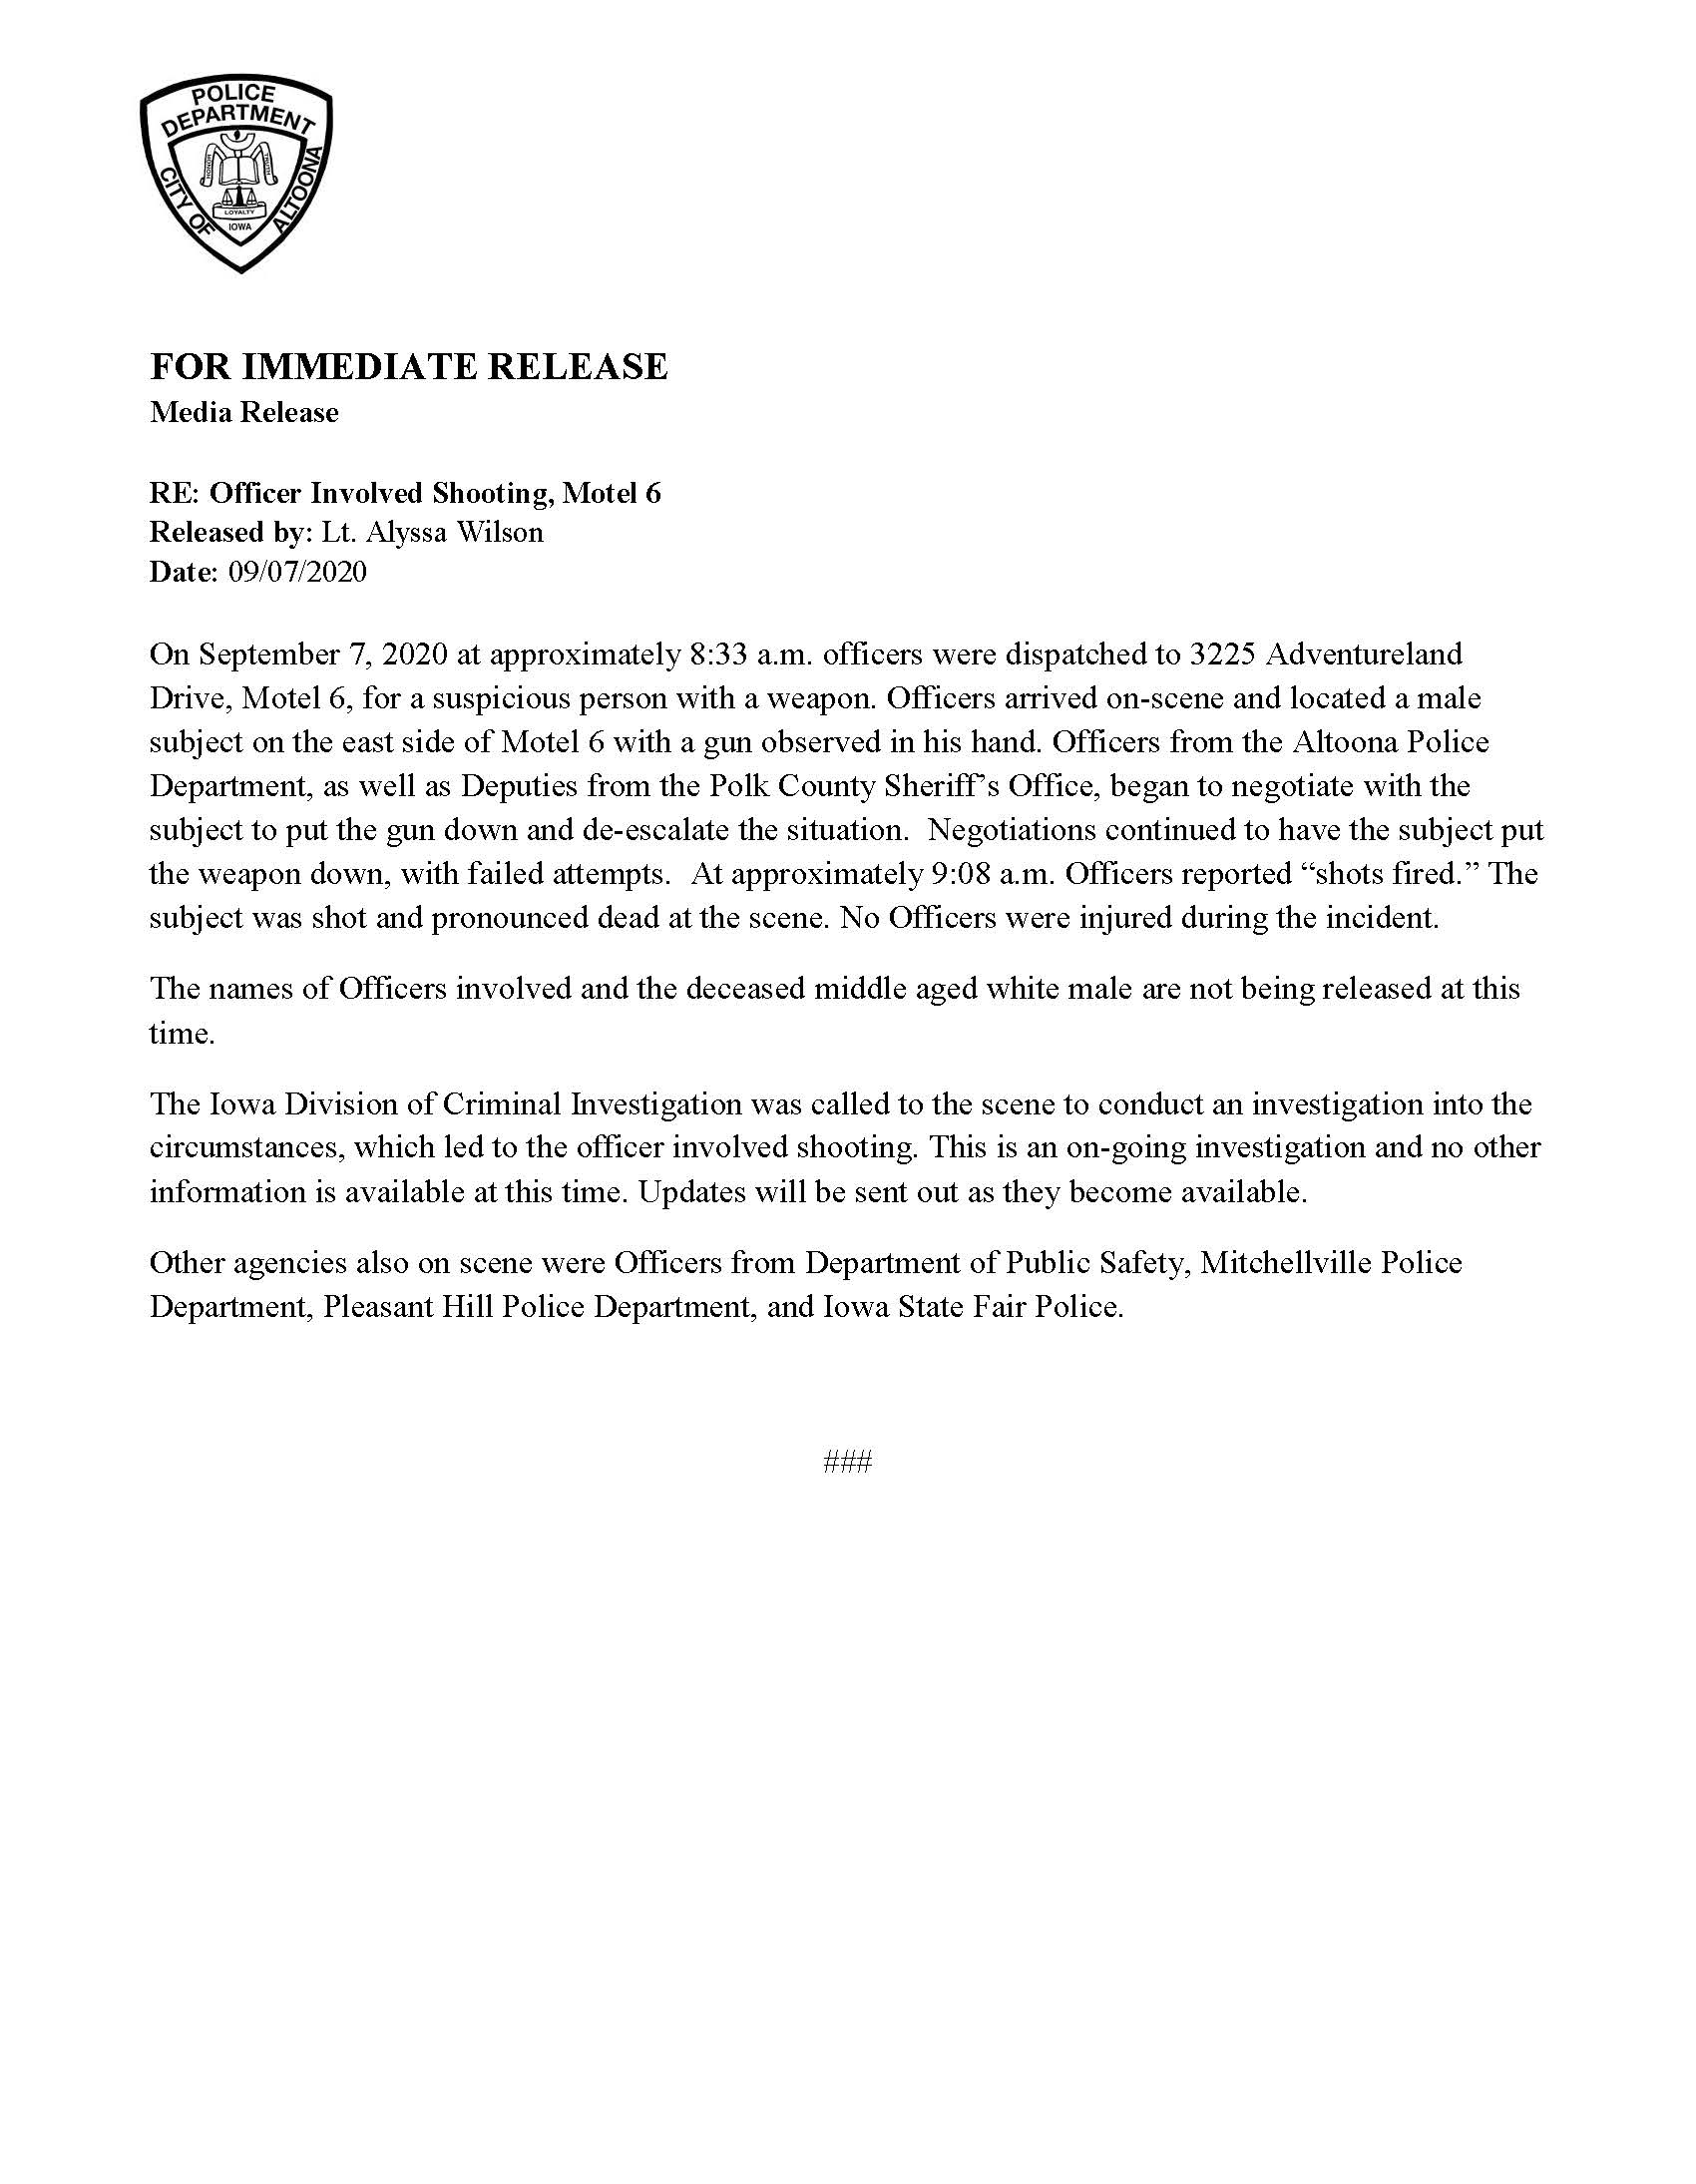 Link to Altoona press release.